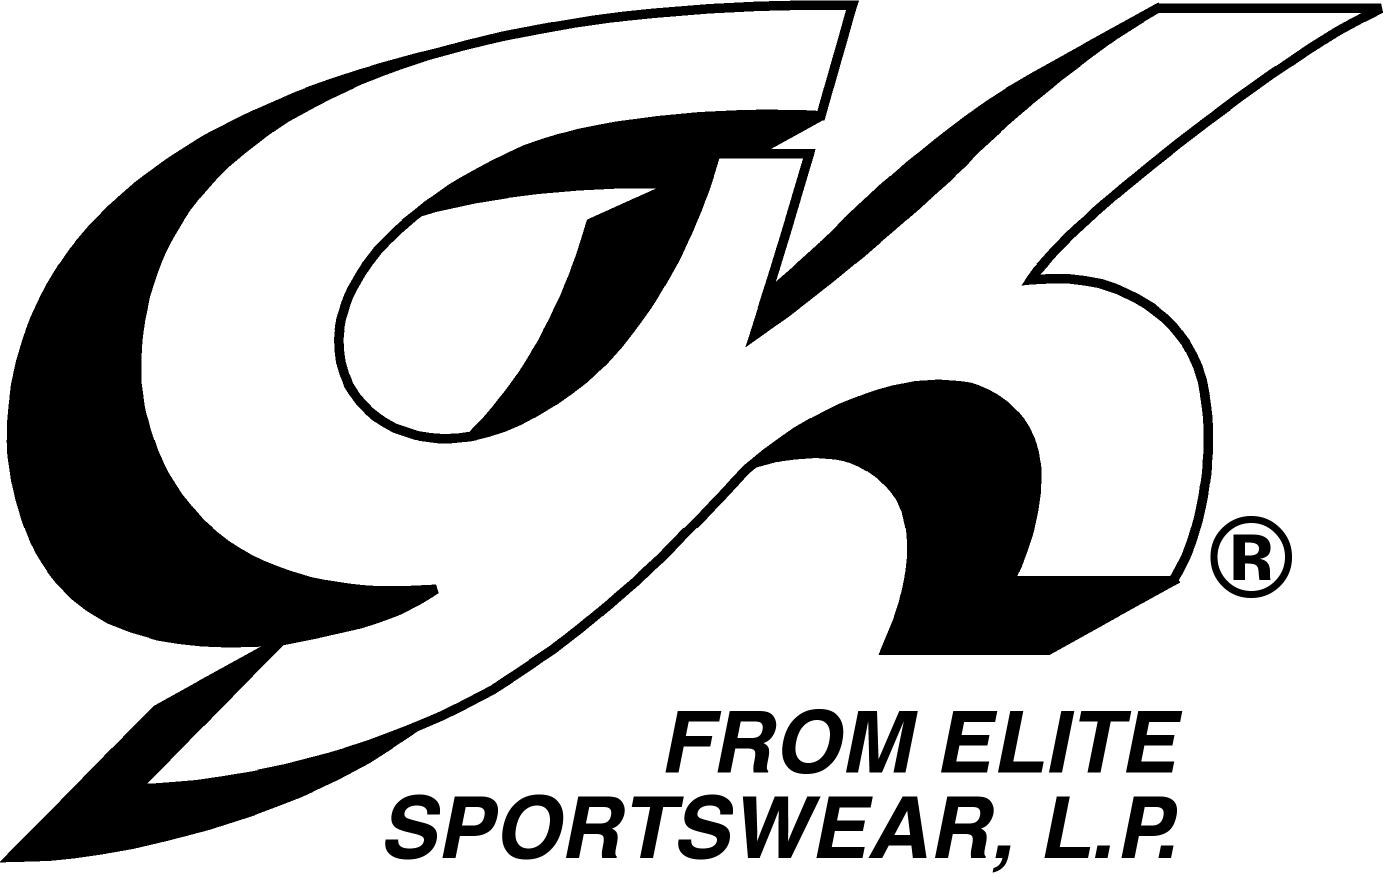 jonathan horton signs endorsement agreement with gk elite sportswear. Black Bedroom Furniture Sets. Home Design Ideas